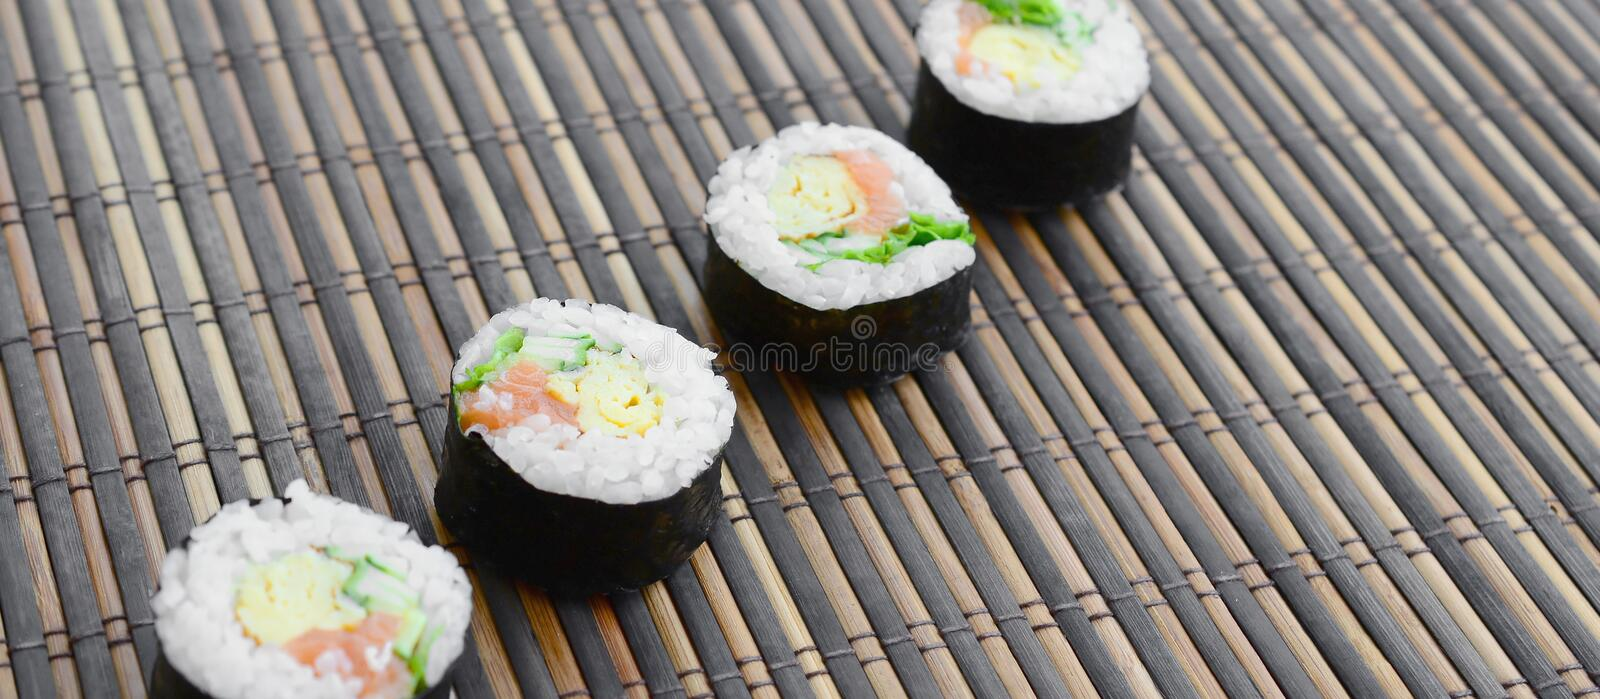 Sushi rolls lies on a bamboo straw serwing mat. Traditional Asian food stock images